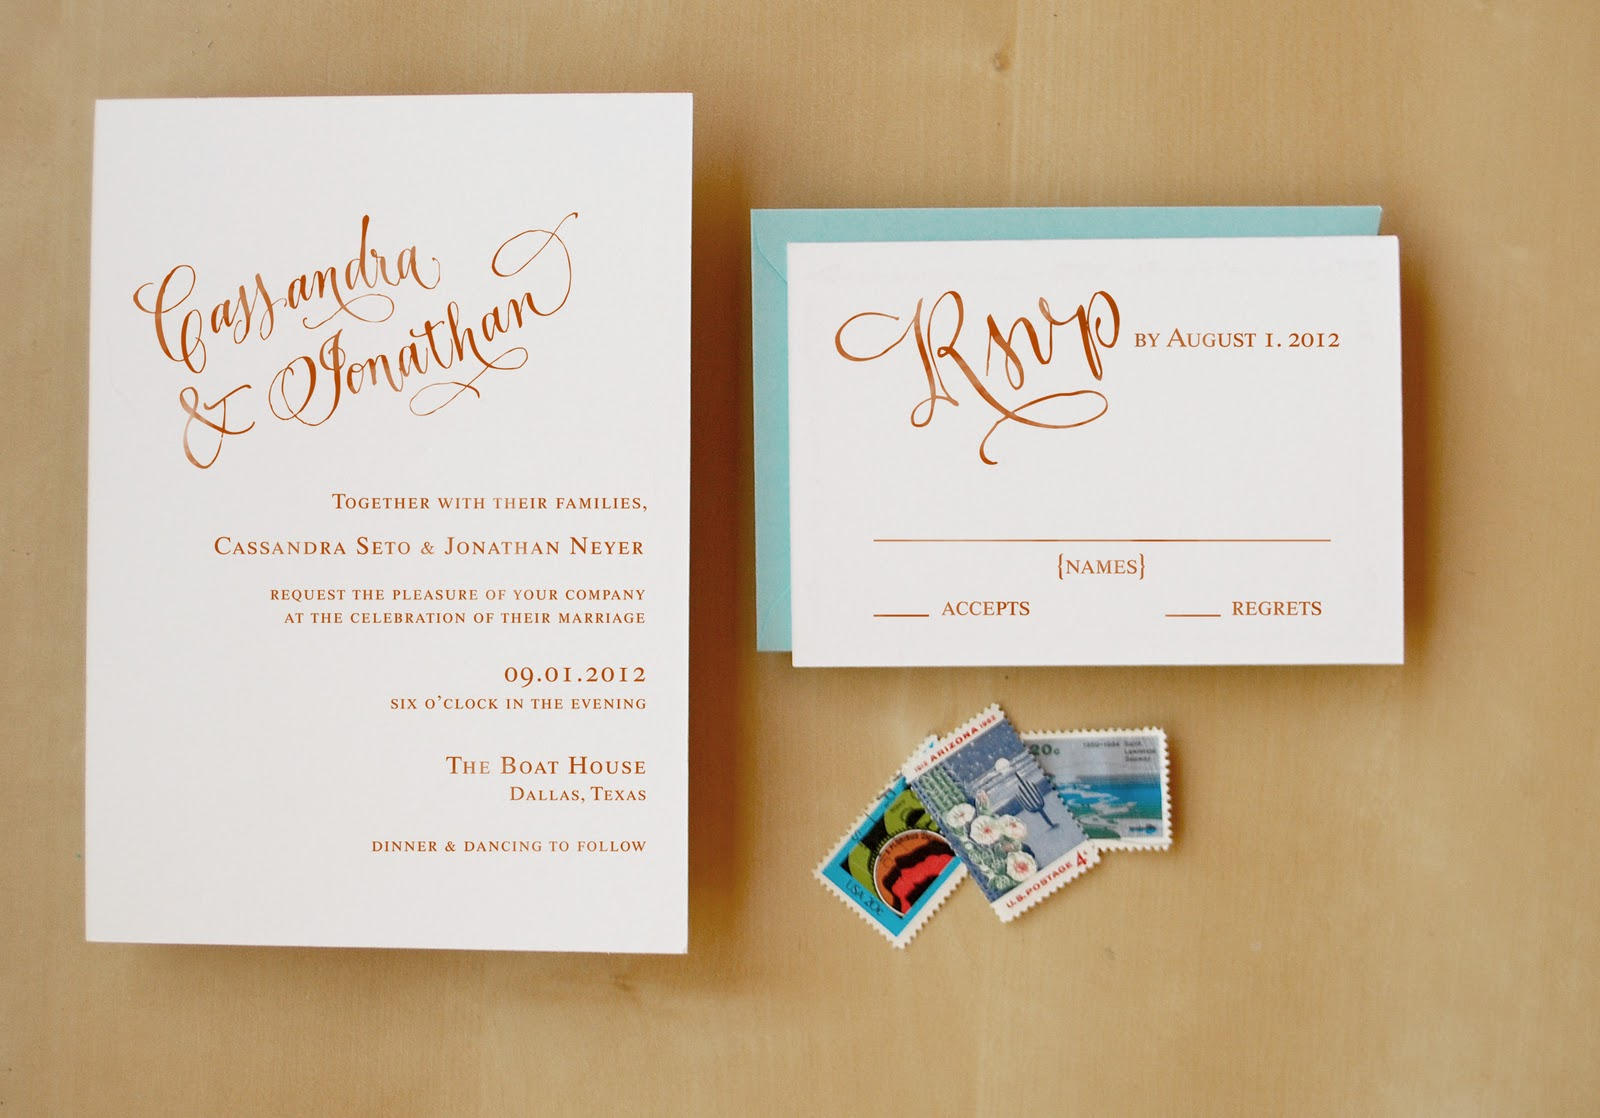 antiquaria: introducing wedding invitation rubber stamps!, Wedding invitations